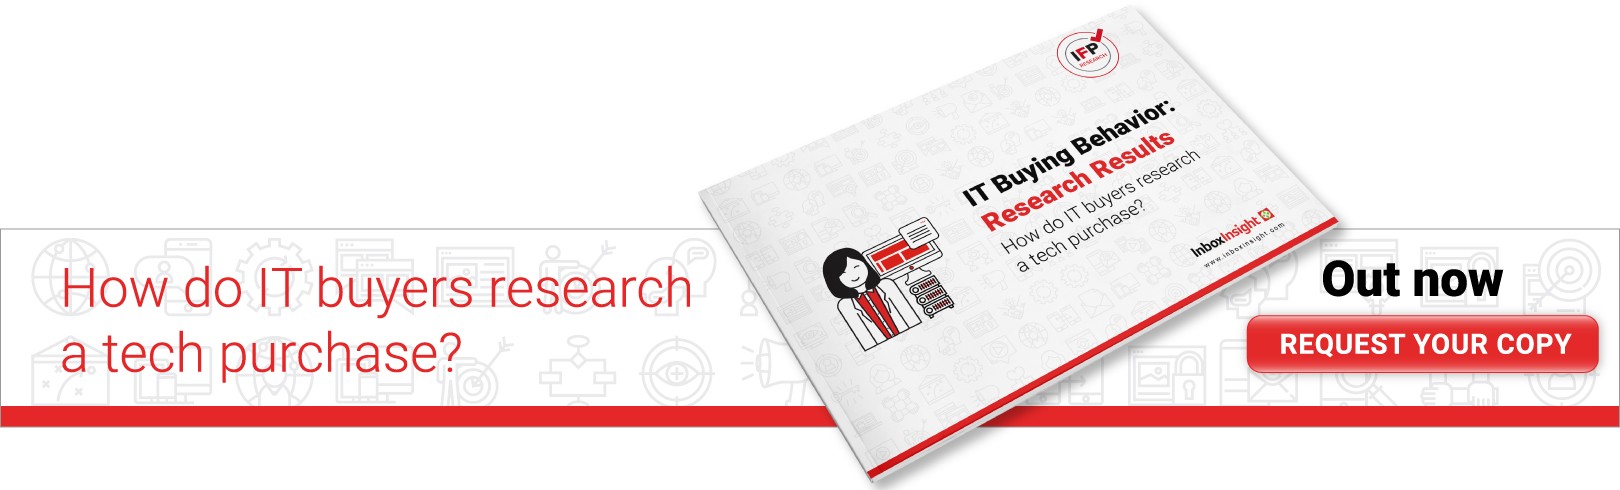 IT Buying Behavior: Research Results